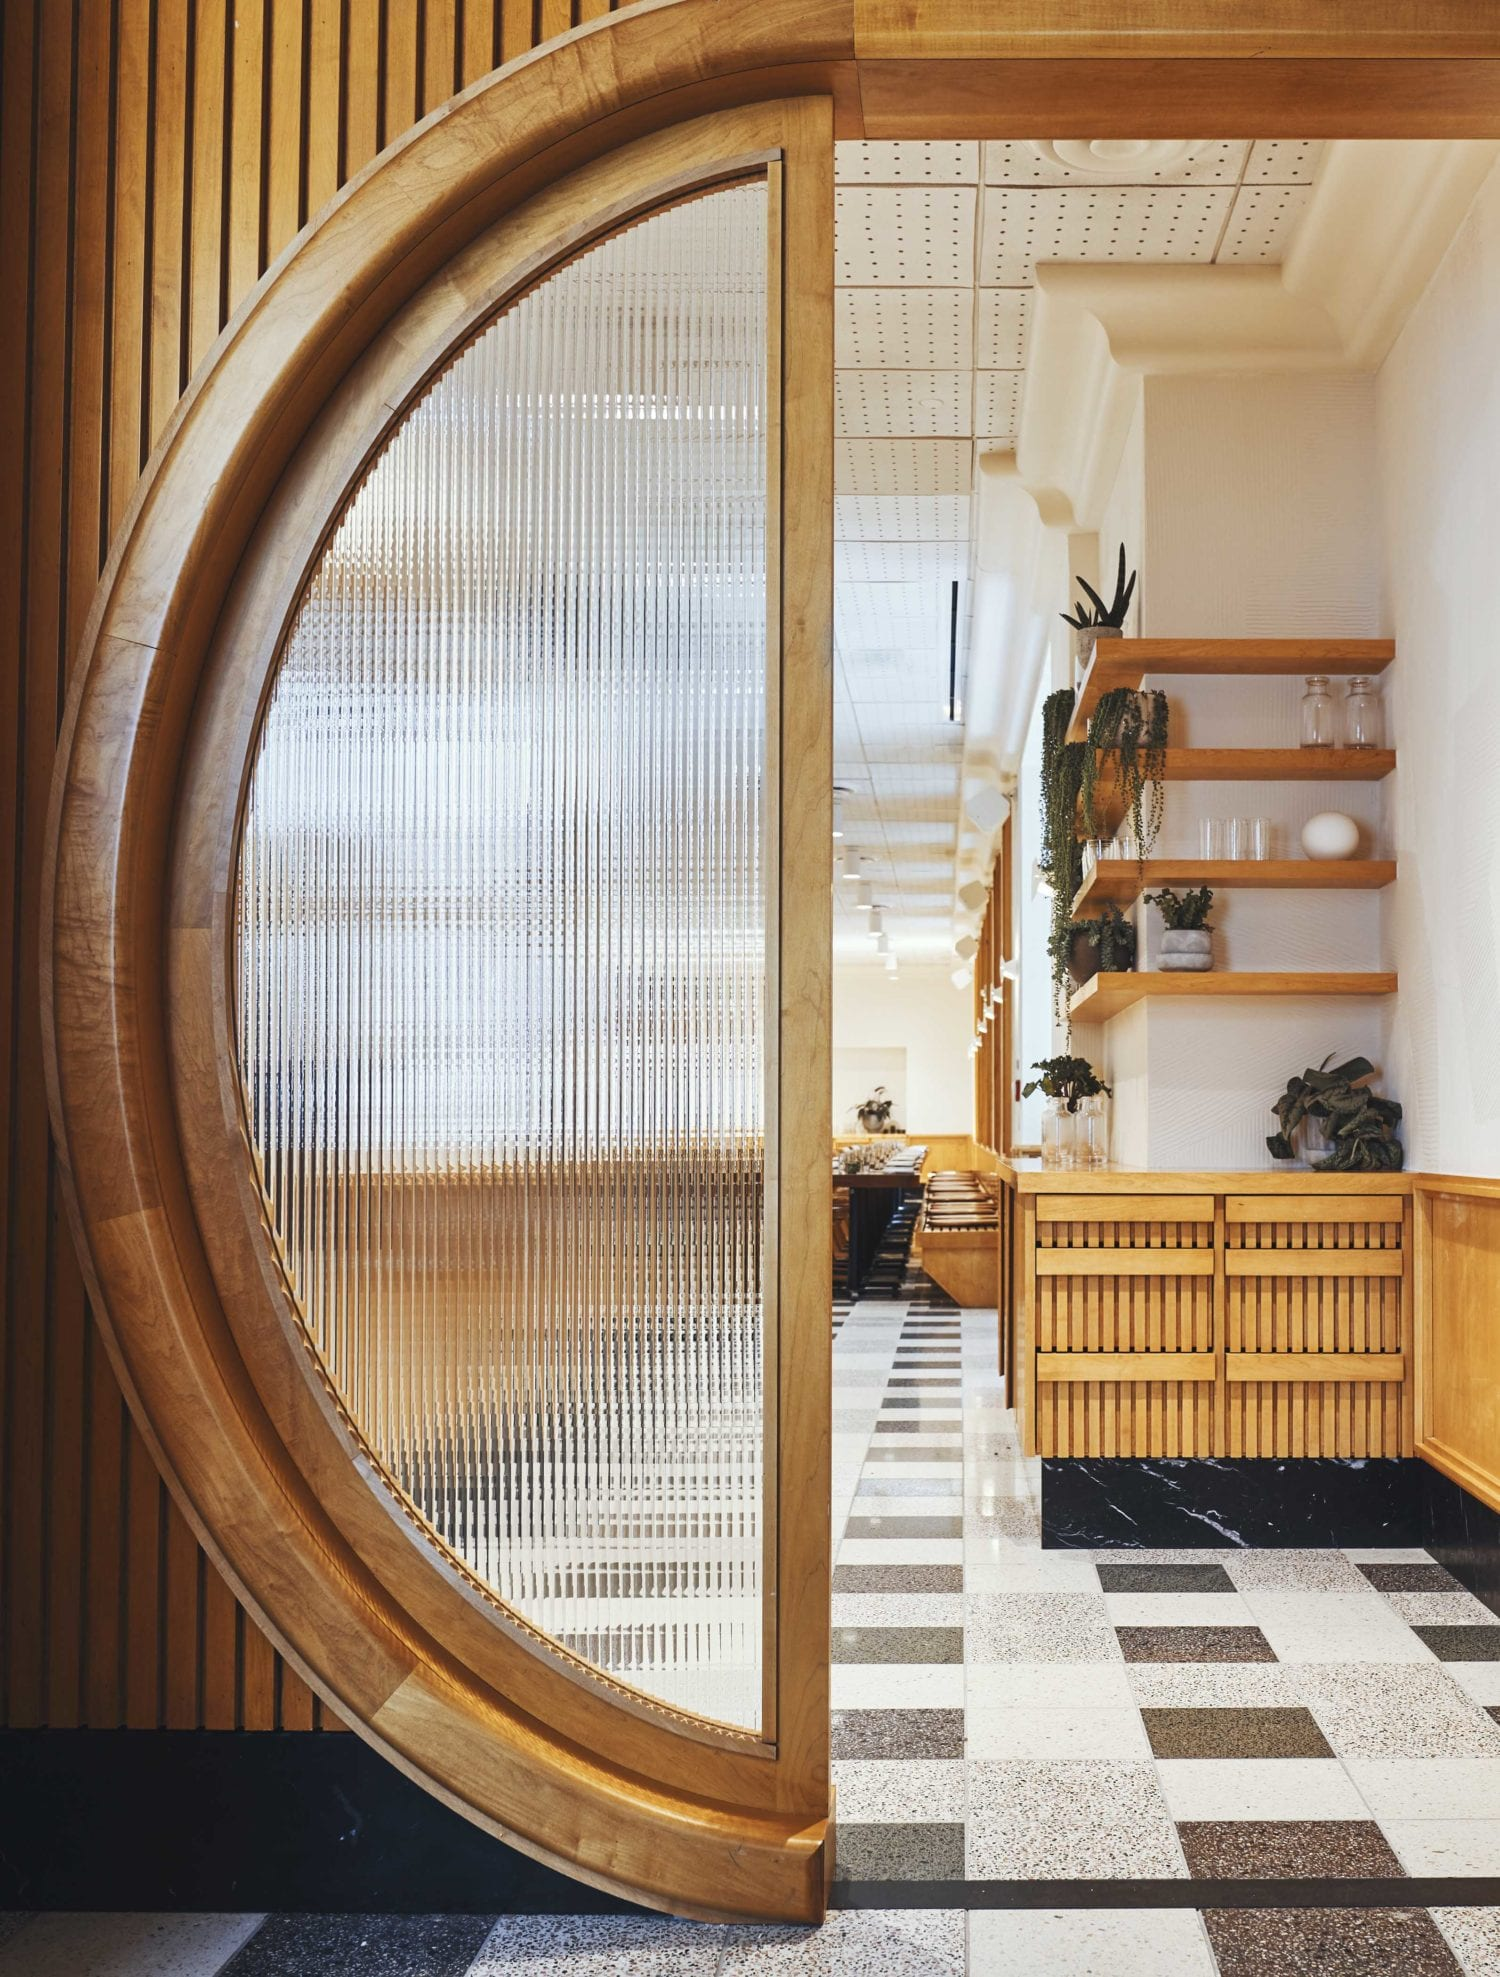 Sister City Hotel Opens in New York | Yellowtrace